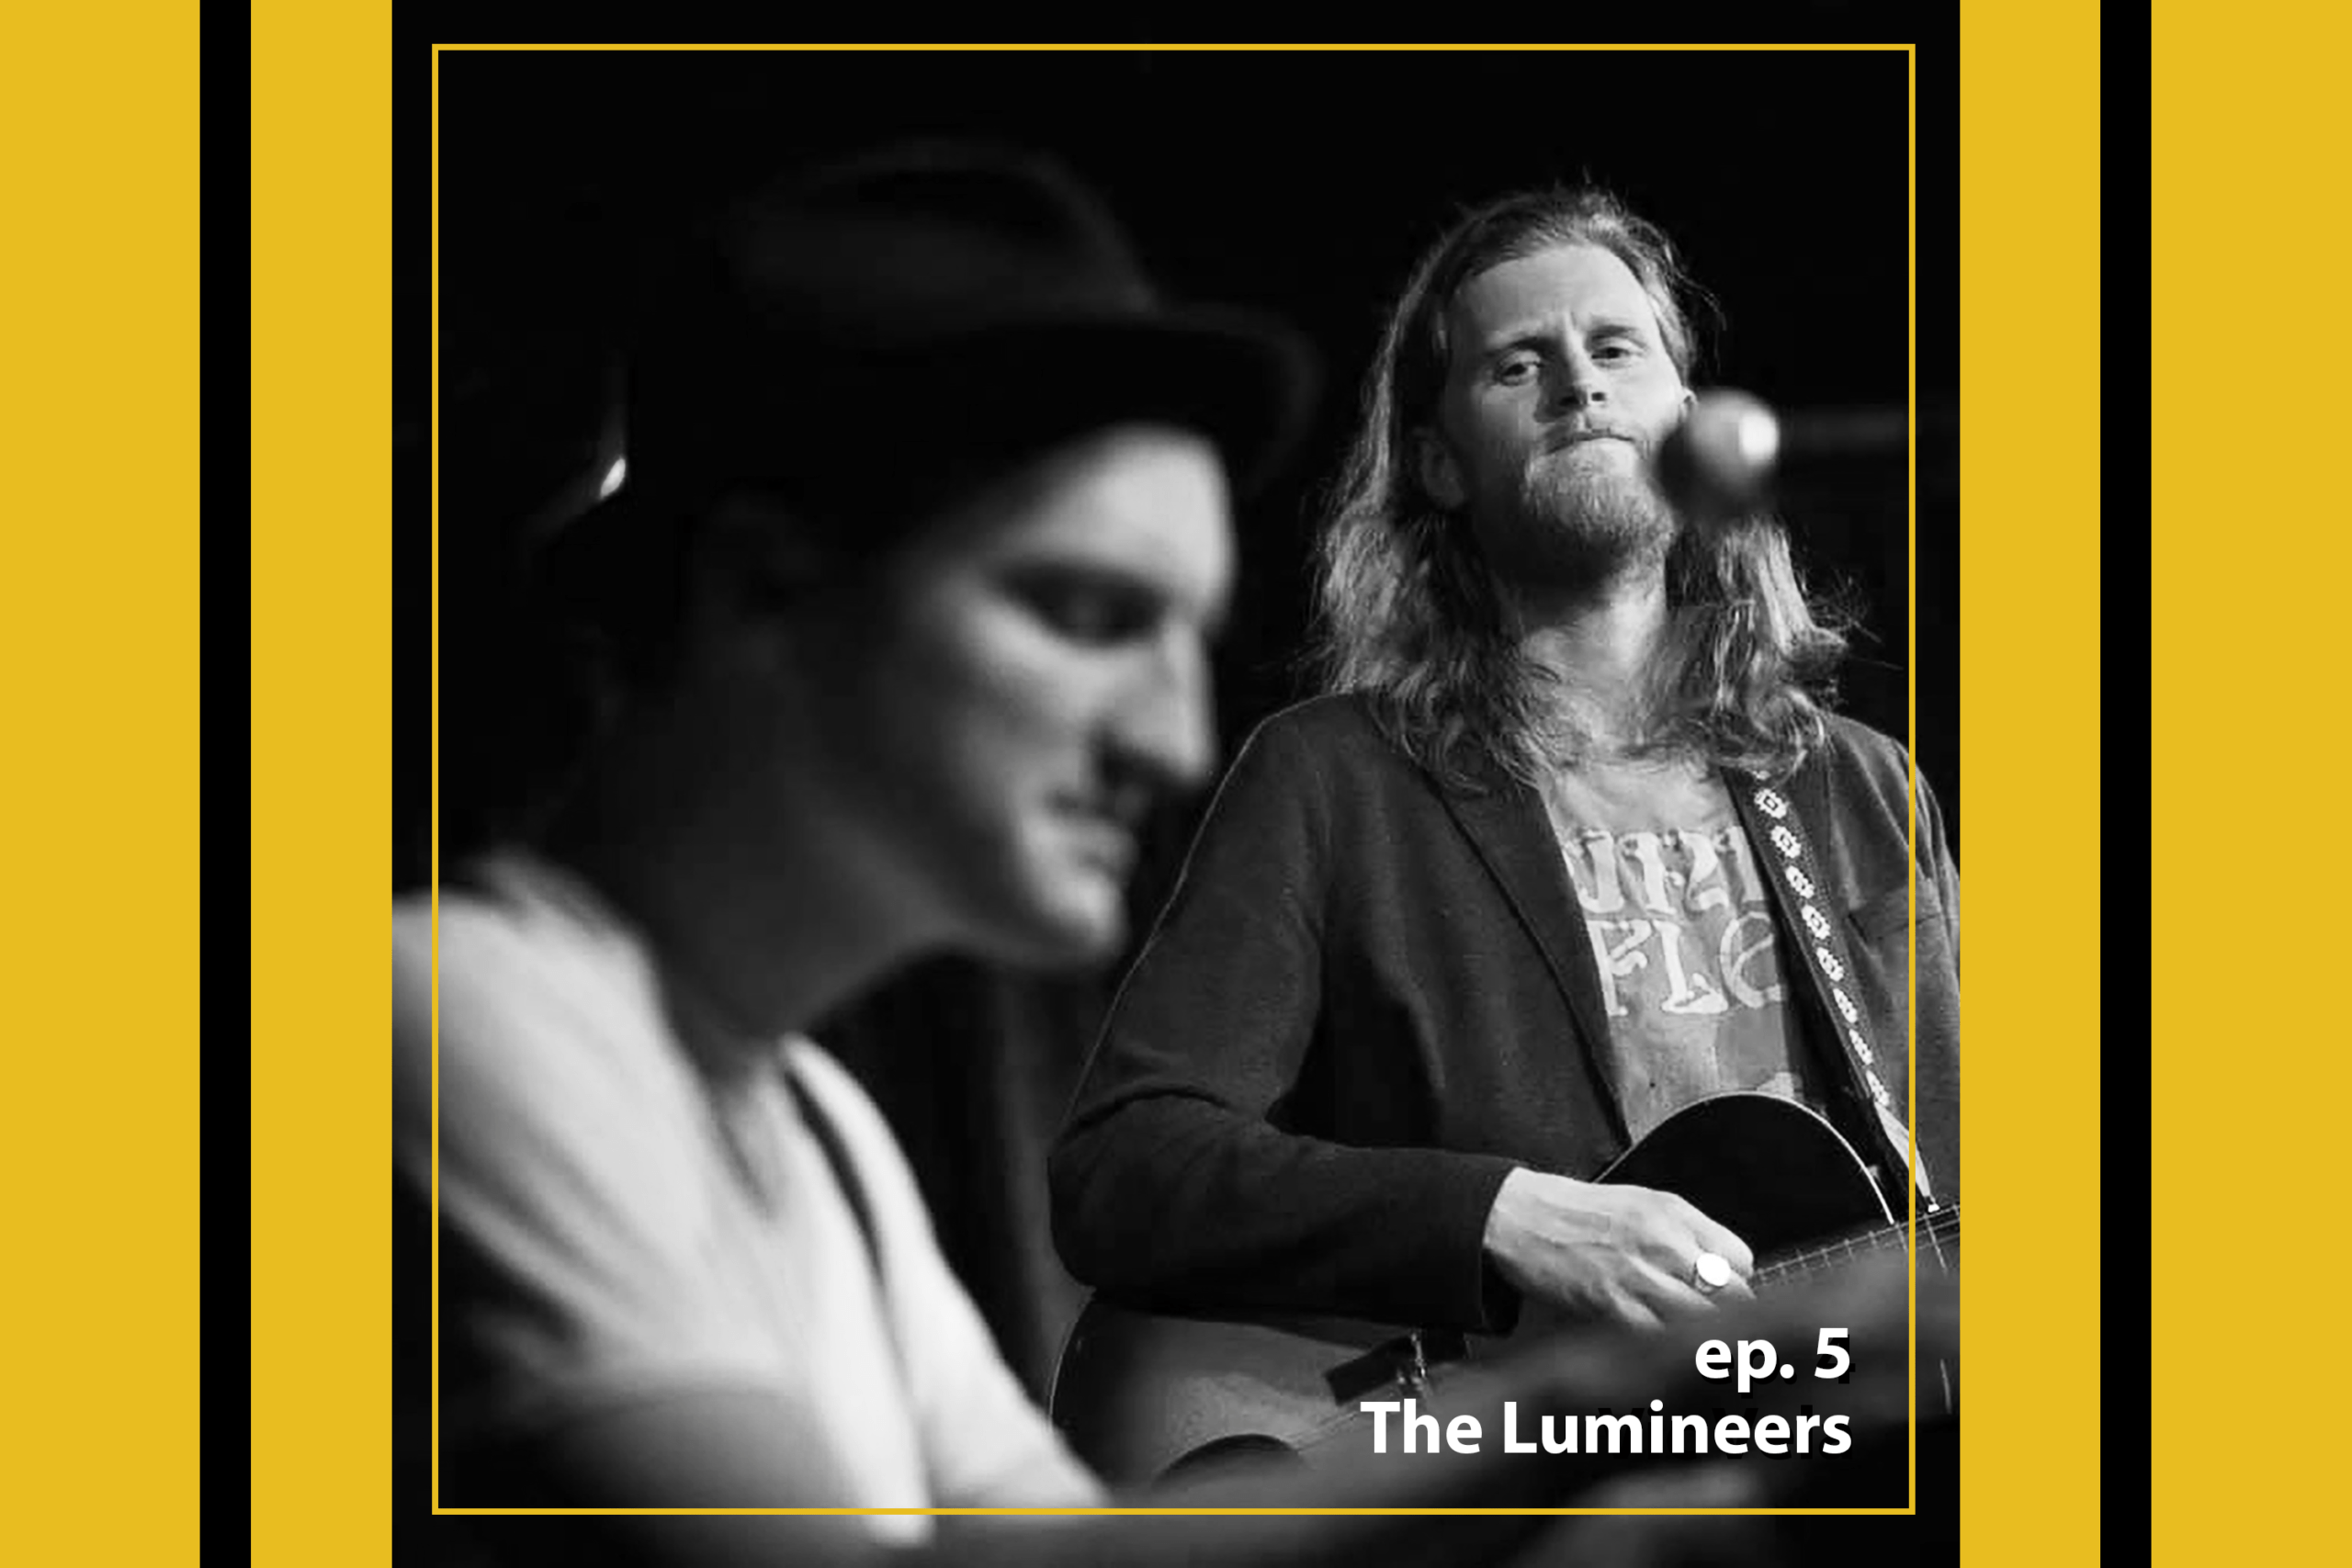 The Lumineers on Back From Broken episode 5